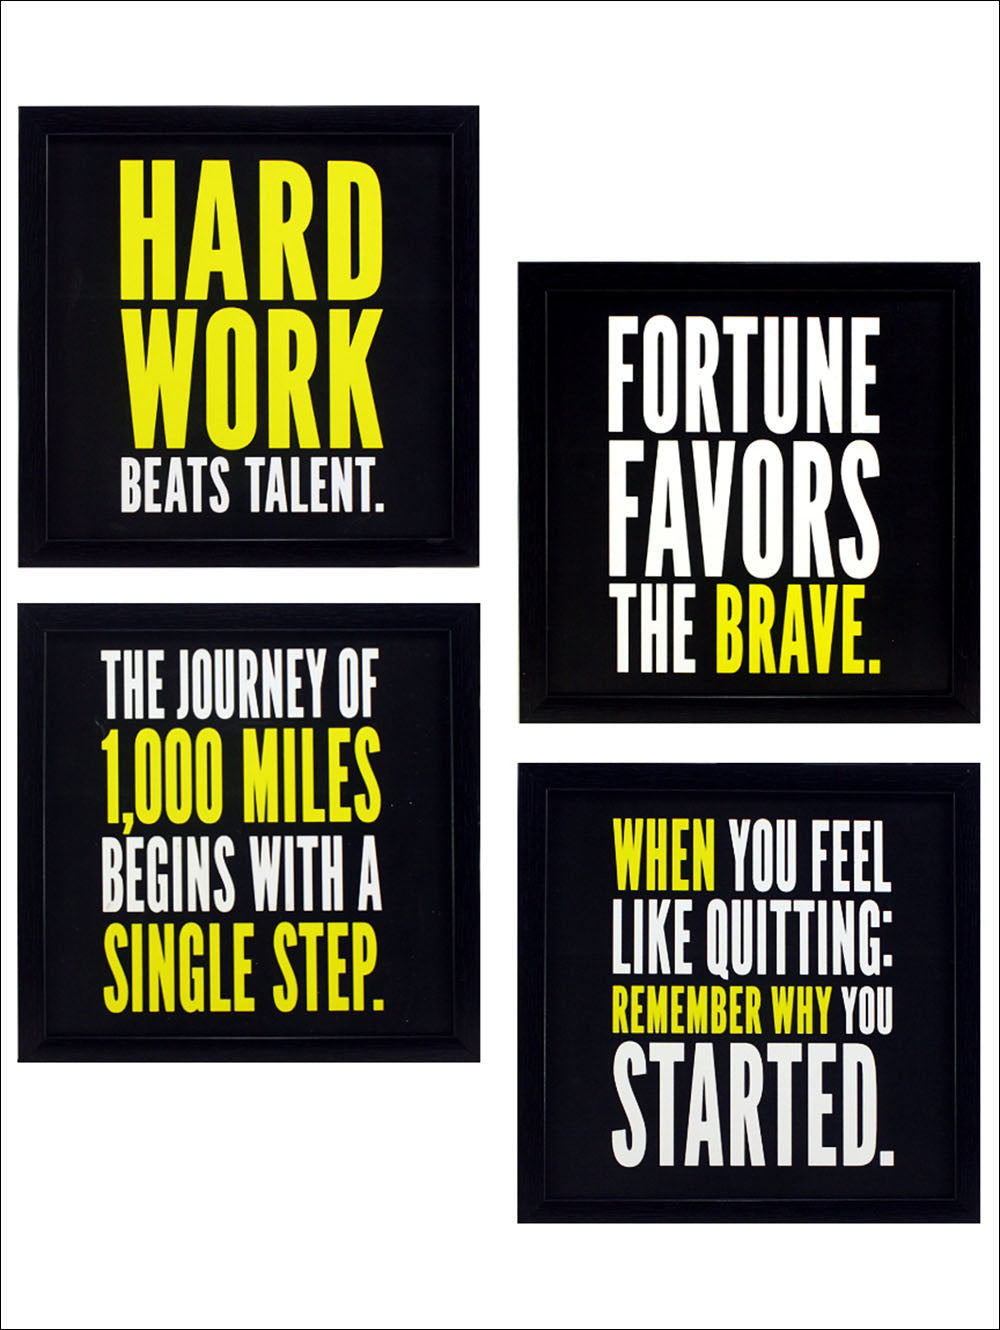 Indianara 4 Piece Set Of Framed Wall Hanging Motivational Office Decor Art Prints Without Glass